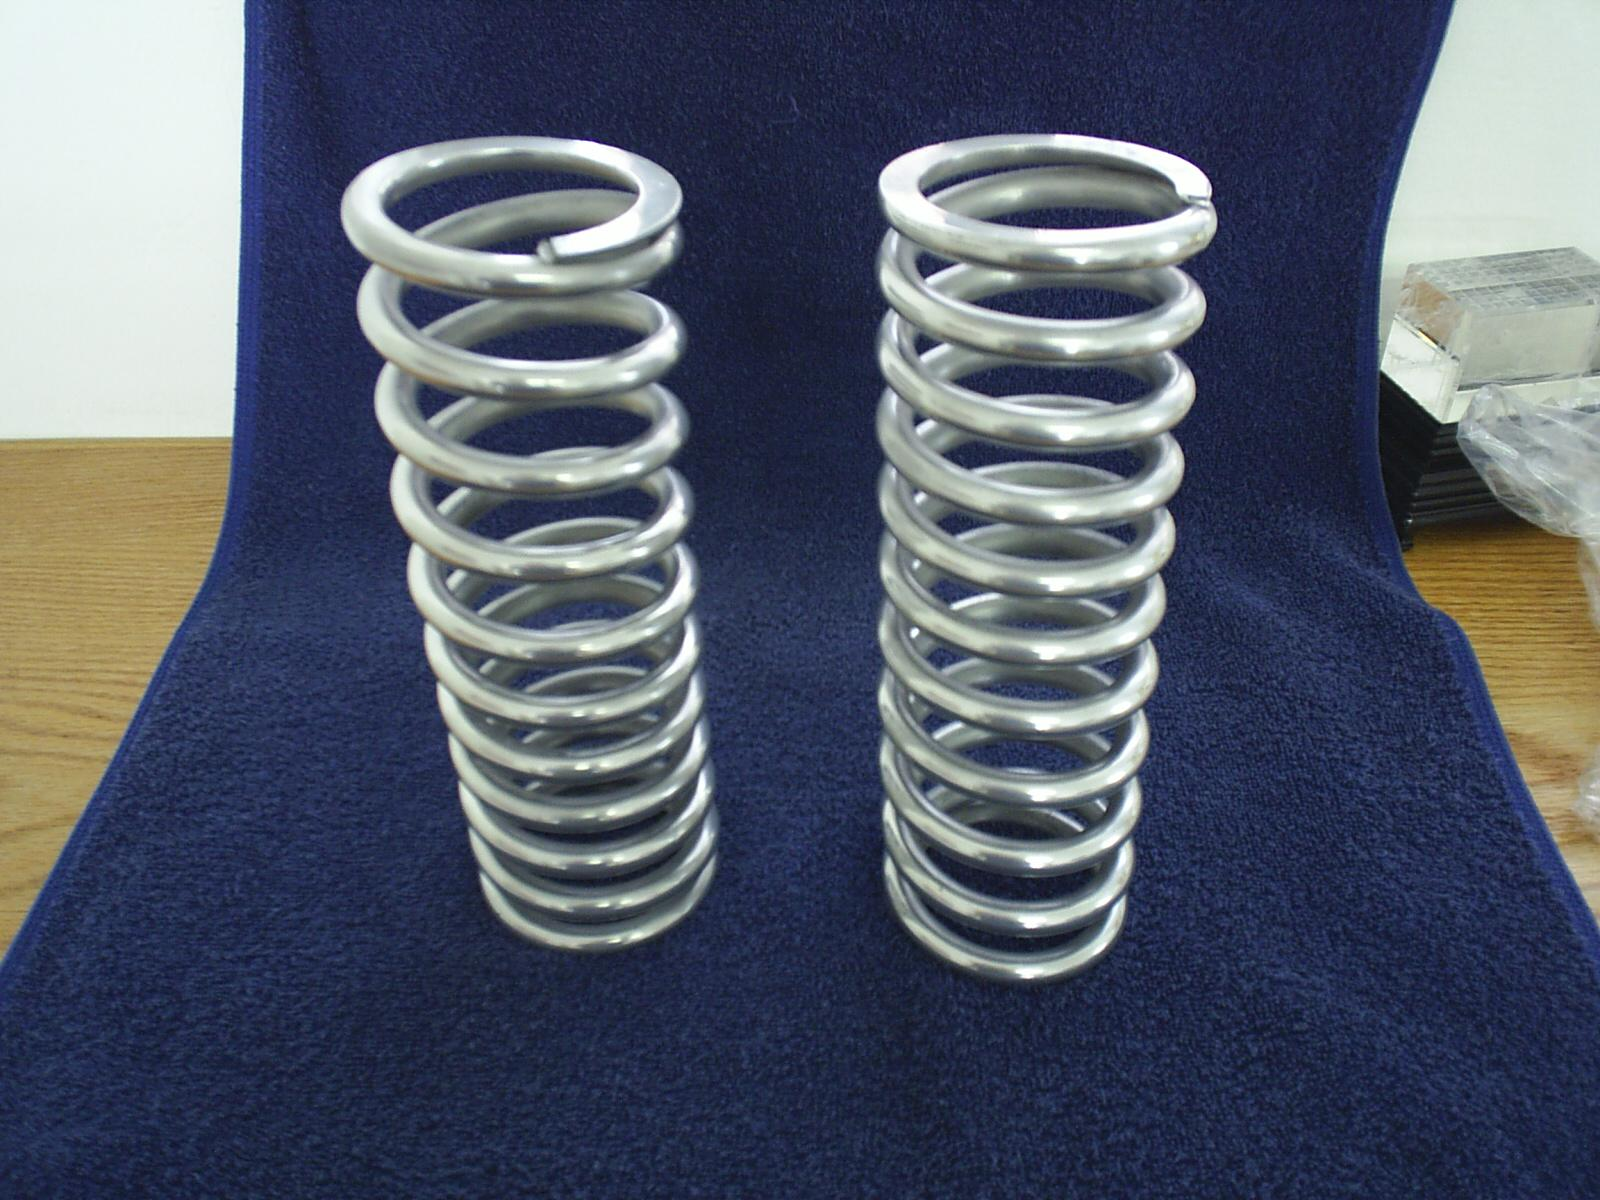 MCX coated springs 2